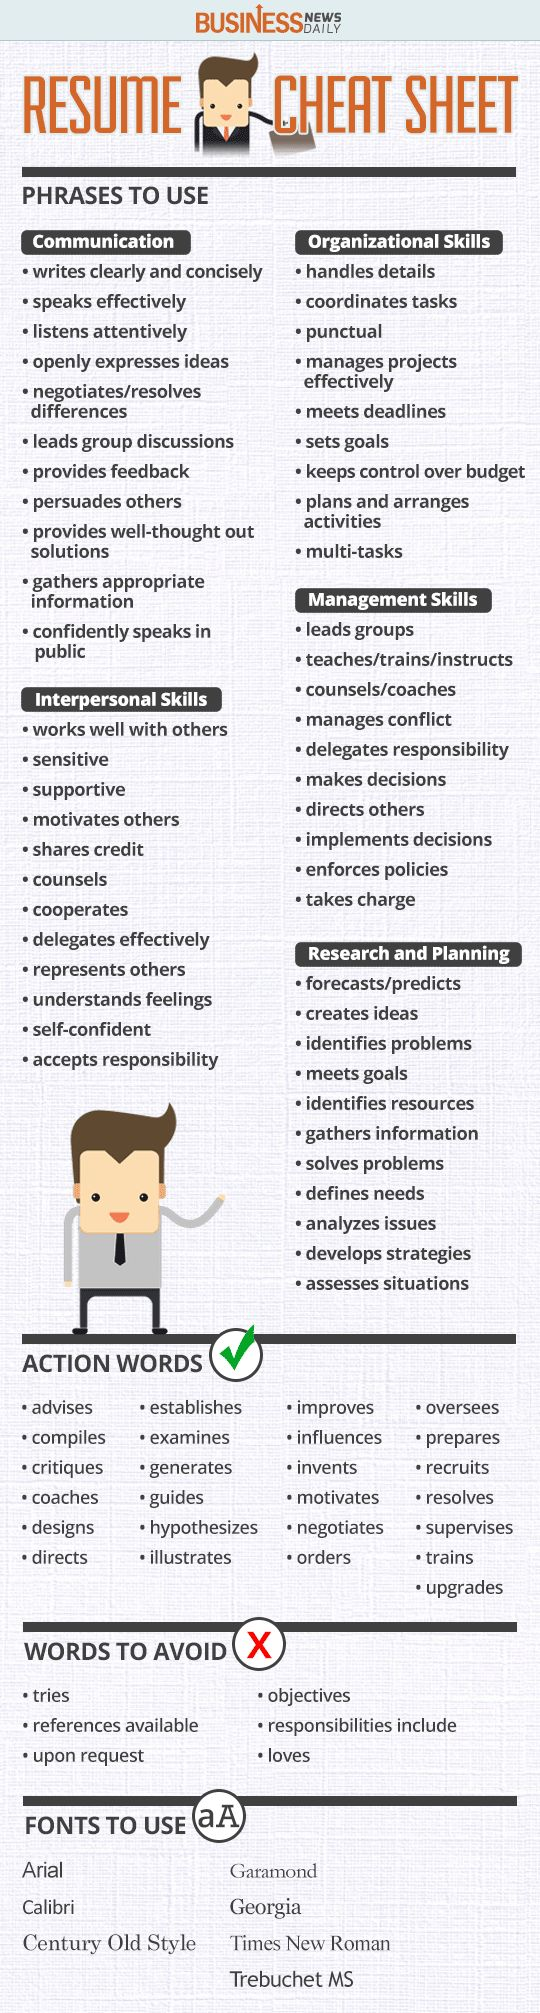 Opposenewapstandardsus  Marvelous  Ideas About Resume On Pinterest  Cv Format Resume Cv And  With Licious Resume Cheat Sheet Infographic Andrews Almost Done With A Complete Unit On Employment Which With Adorable Resume Cover Sheet Examples Also Resume Graduate School In Addition Examples Of Objectives In A Resume And Restaurant Hostess Resume As Well As Sample Resume For Warehouse Worker Additionally Perfect Resume Builder From Pinterestcom With Opposenewapstandardsus  Licious  Ideas About Resume On Pinterest  Cv Format Resume Cv And  With Adorable Resume Cheat Sheet Infographic Andrews Almost Done With A Complete Unit On Employment Which And Marvelous Resume Cover Sheet Examples Also Resume Graduate School In Addition Examples Of Objectives In A Resume From Pinterestcom